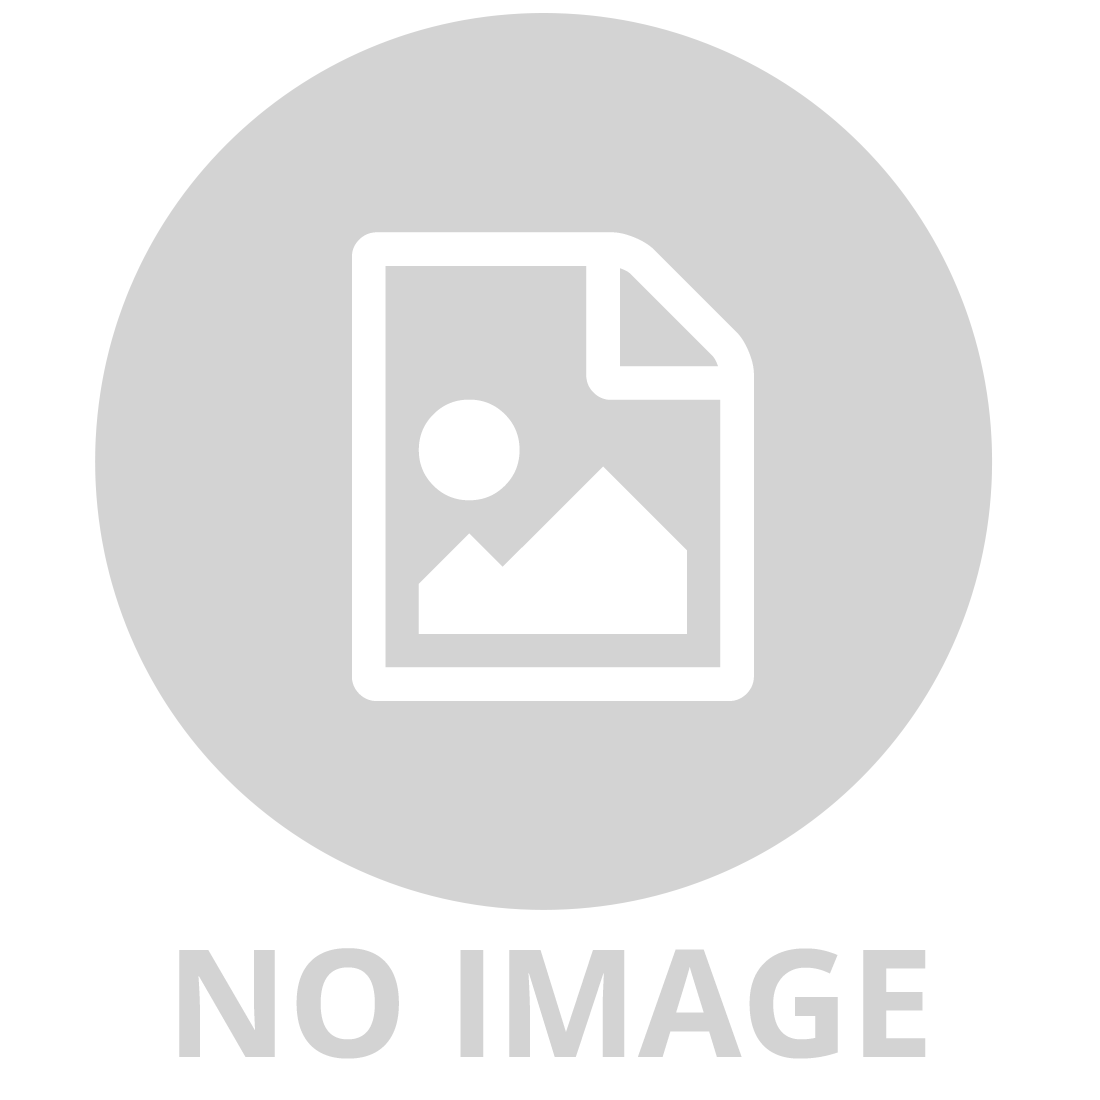 OUR GENERATION RETRO BEACH BELLE OUTFIT